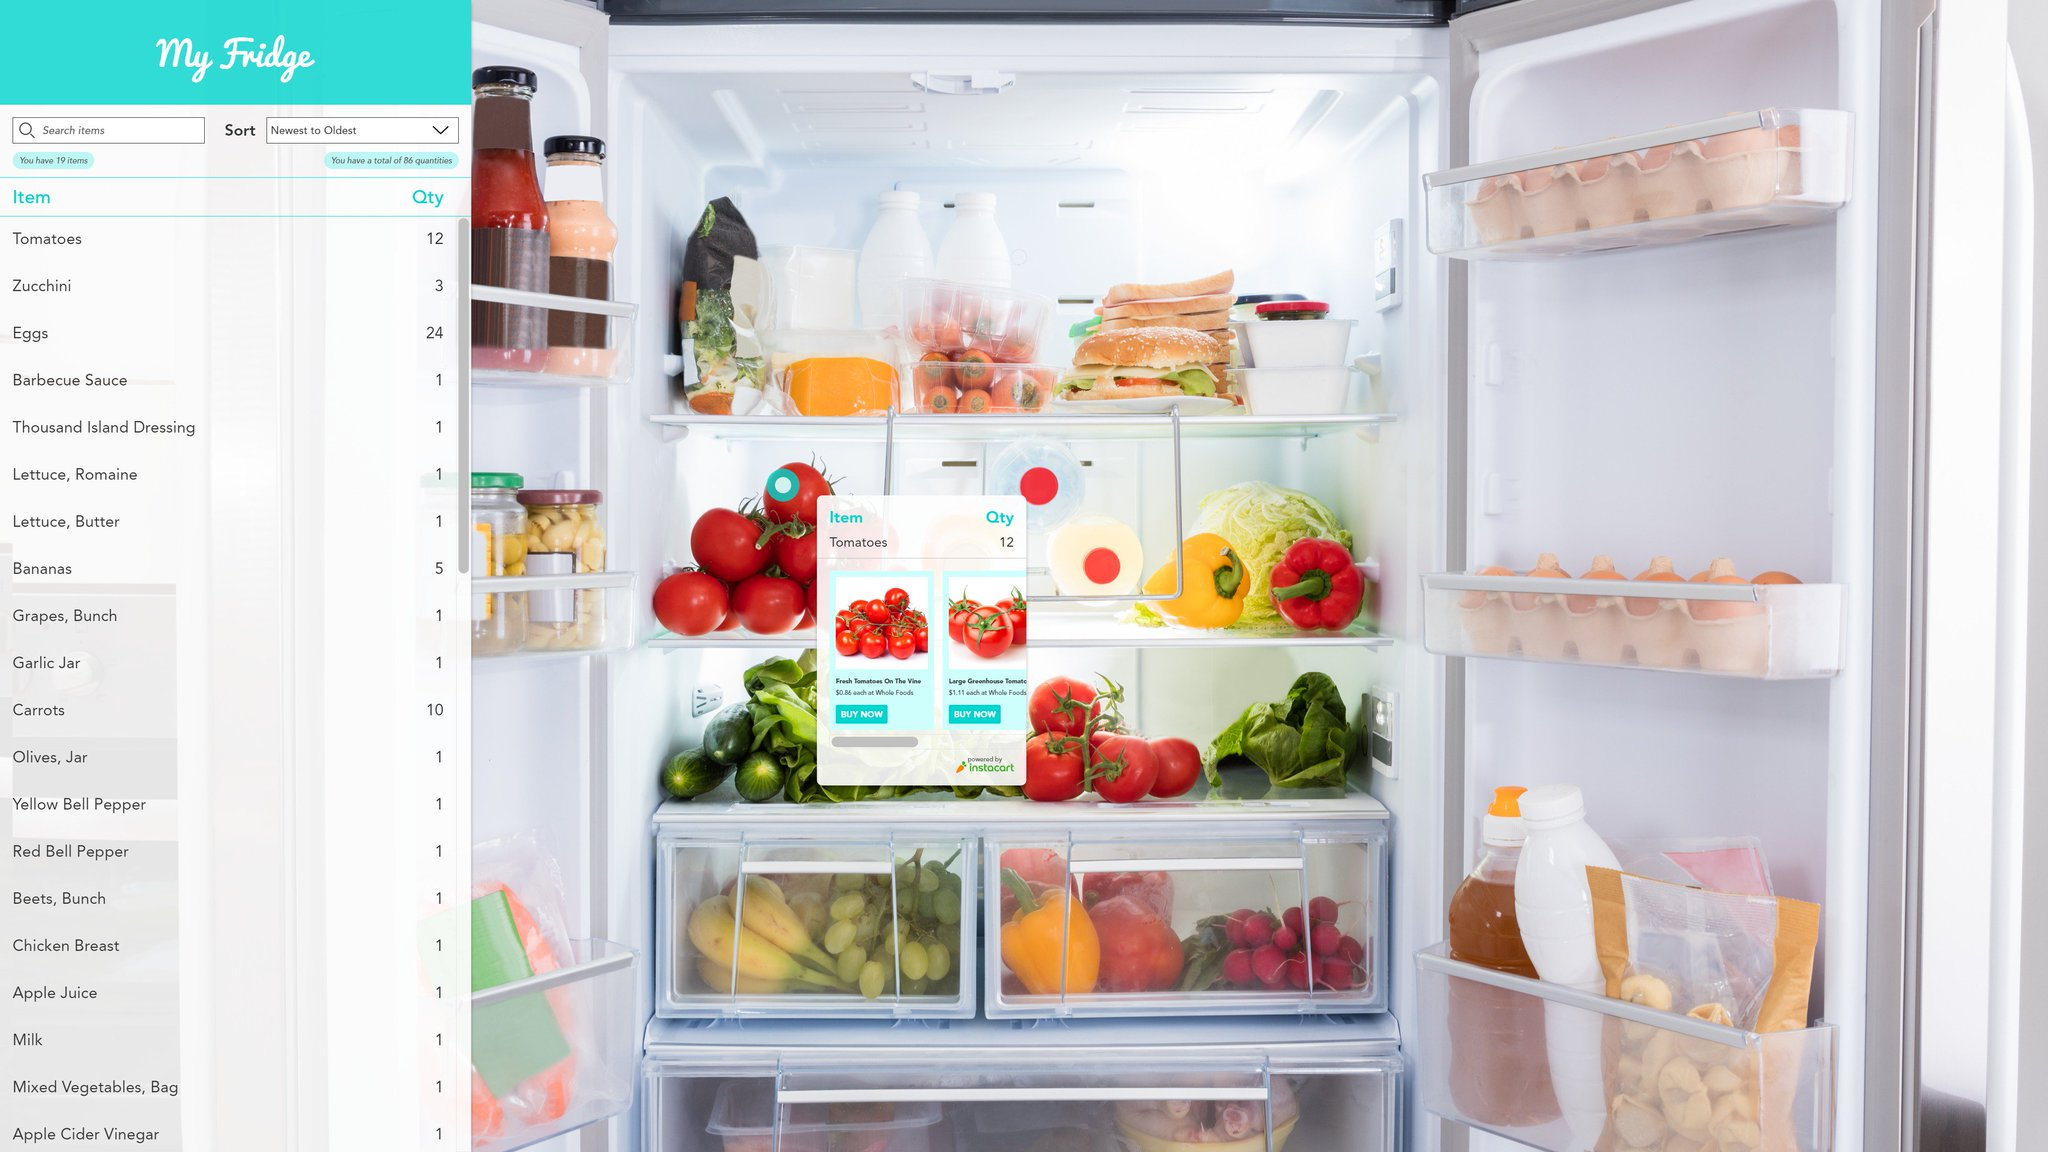 What would #Augment #Reality? What's in my fridge + @Instacart cuz I love it. @lukew -> Invision: https://t.co/H6D79ik8kx #augmentedreality https://t.co/0kW0OEQryg